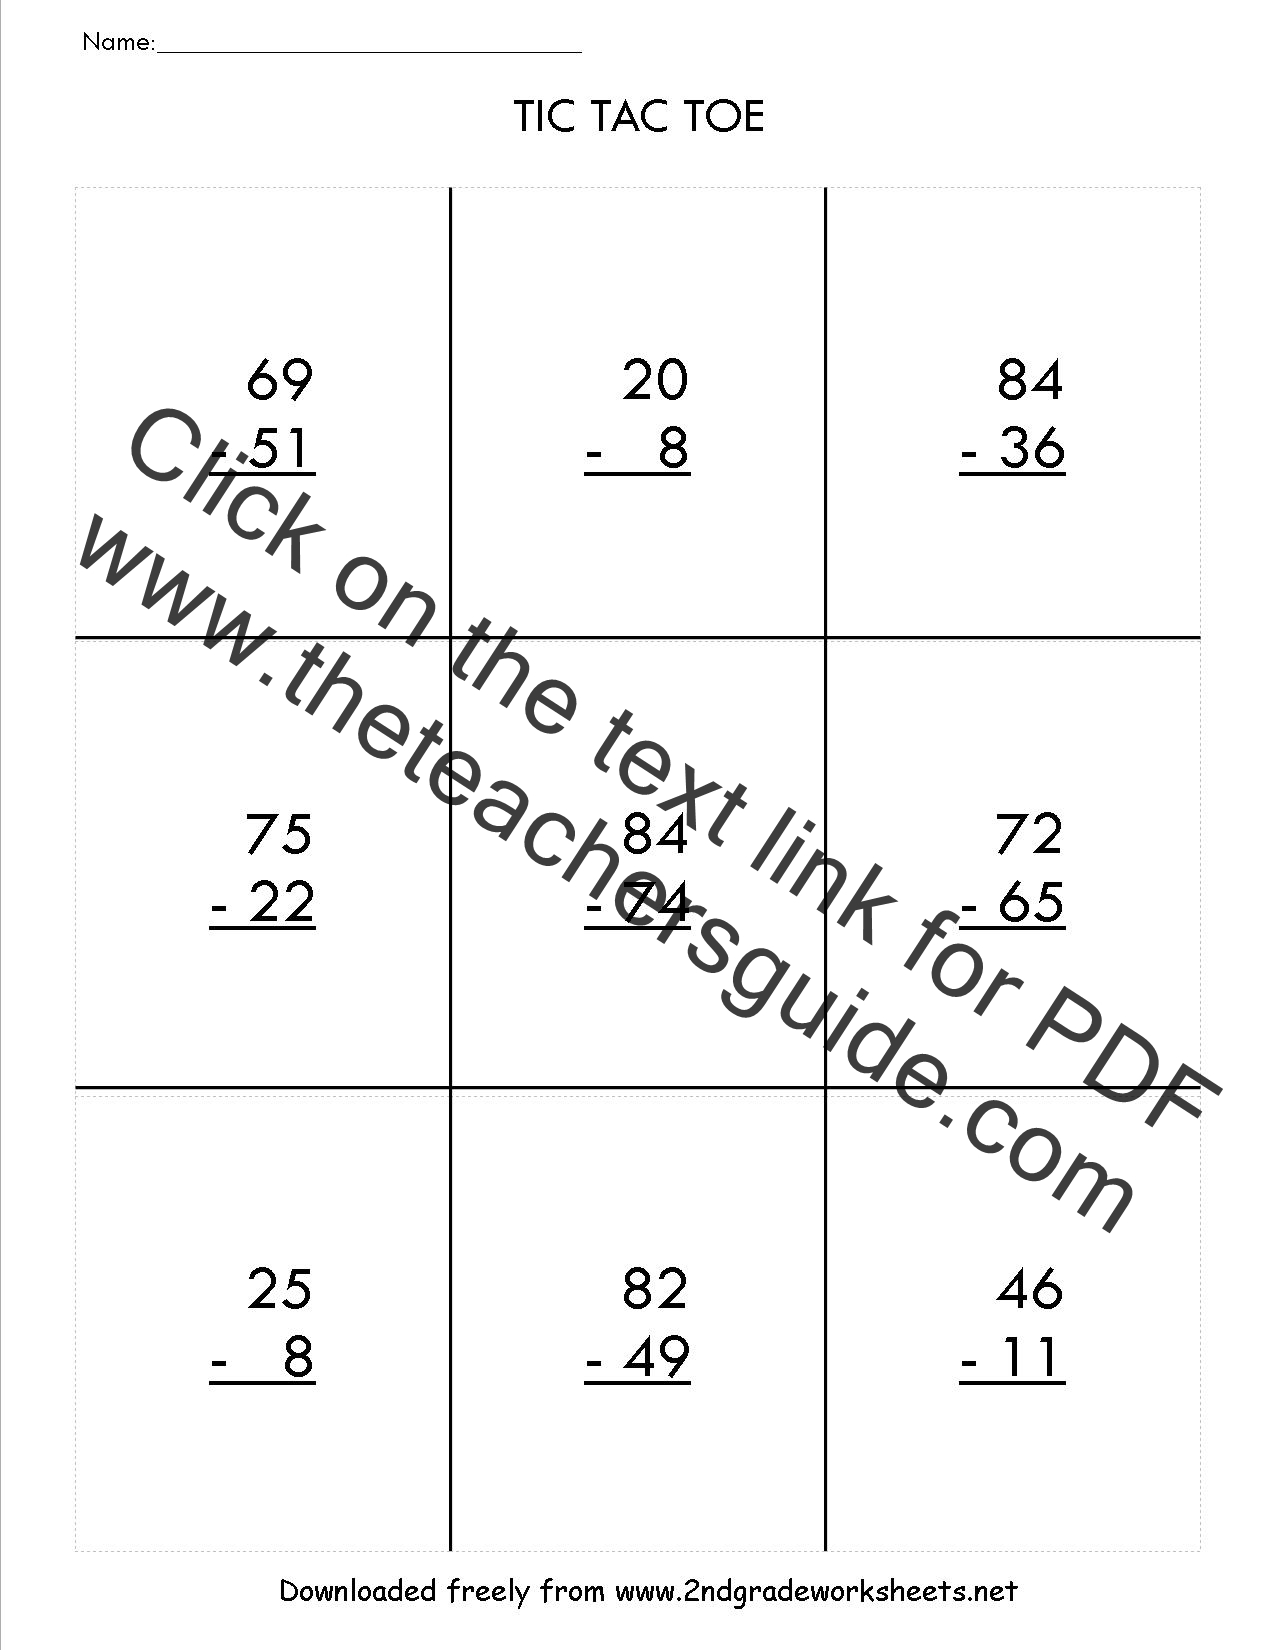 worksheet Subtraction With Regrouping Worksheets 2nd Grade digit subtraction worksheets two with regrouping tic tac toe